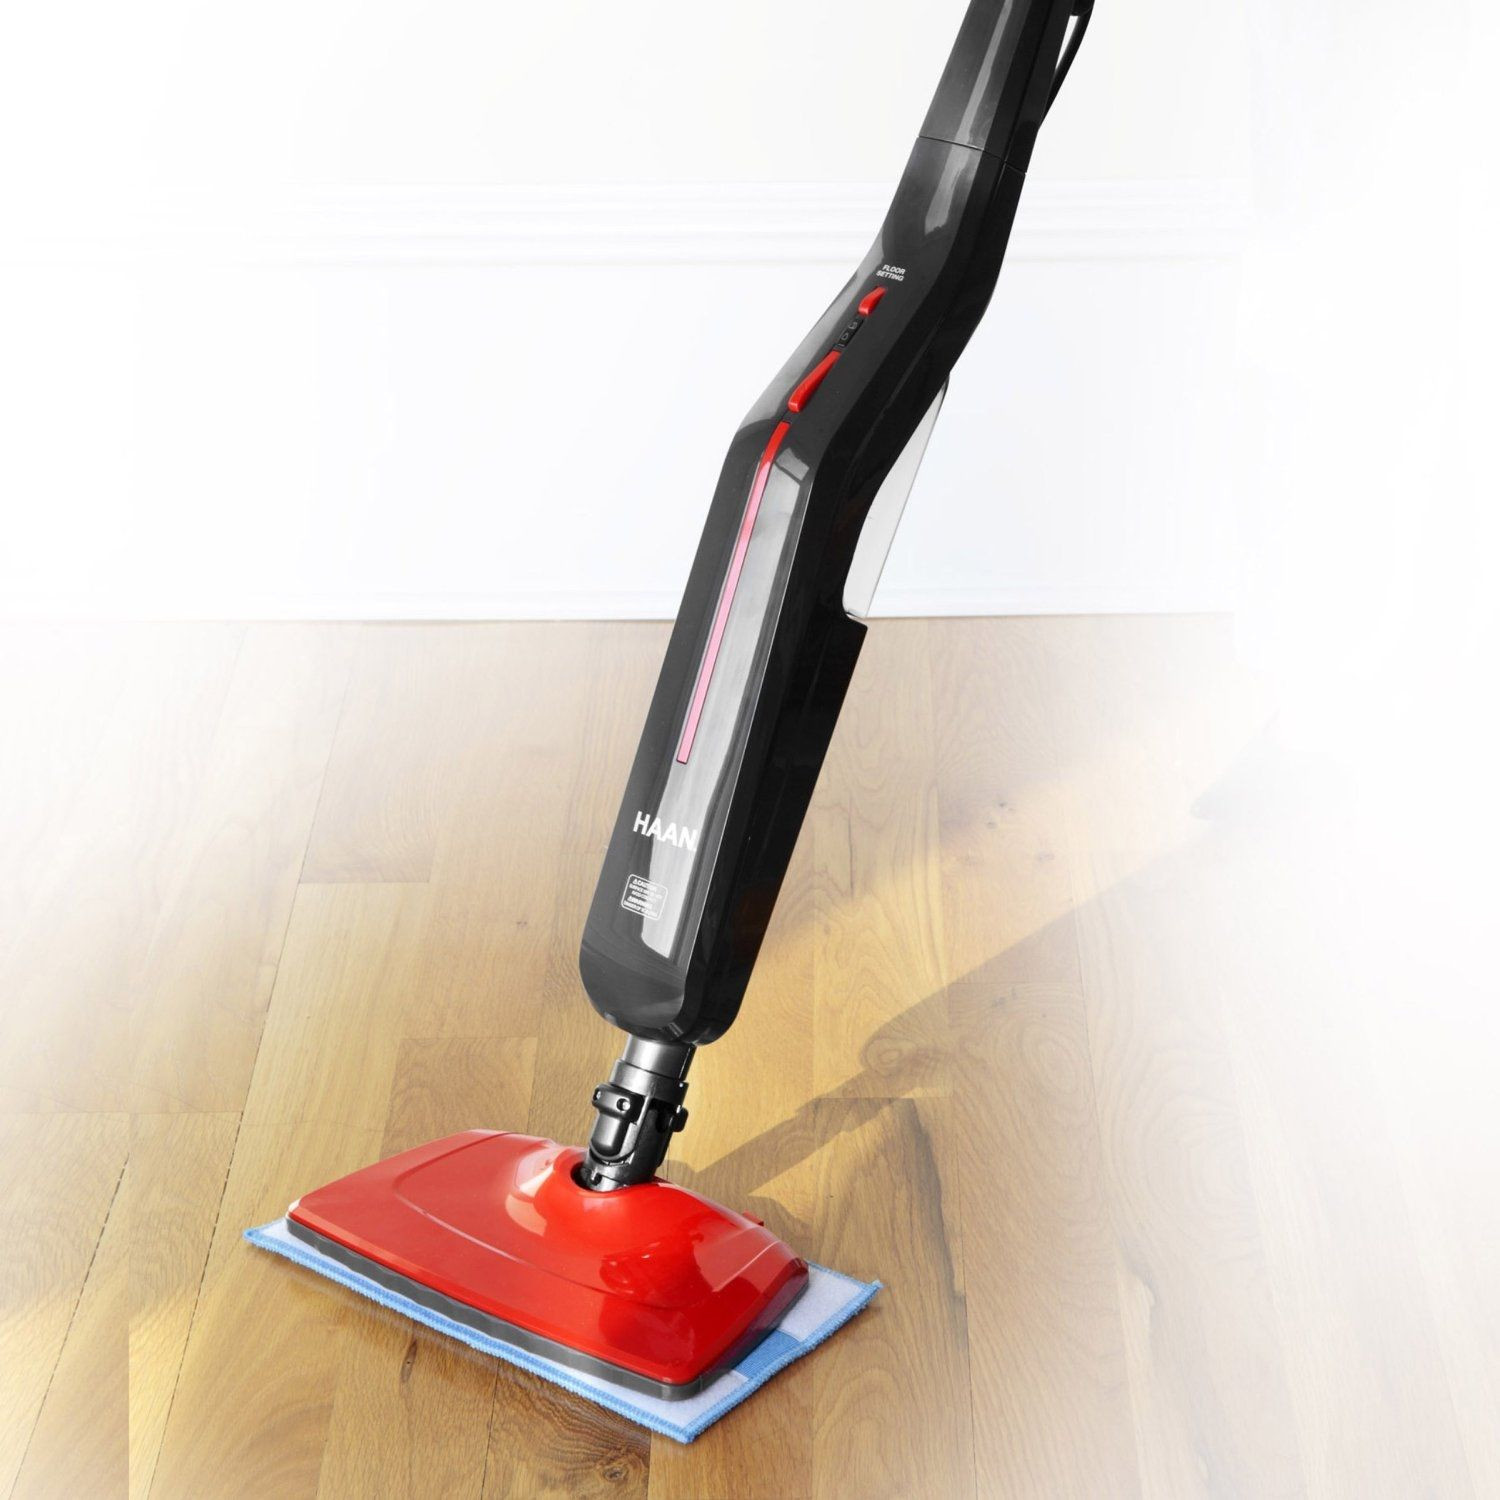 shark navigator professional hardwood floor vacuum cleaners of best hardwood floor vacuum and steam http glblcom com with vacuums a· best hardwood floor vacuum and steam